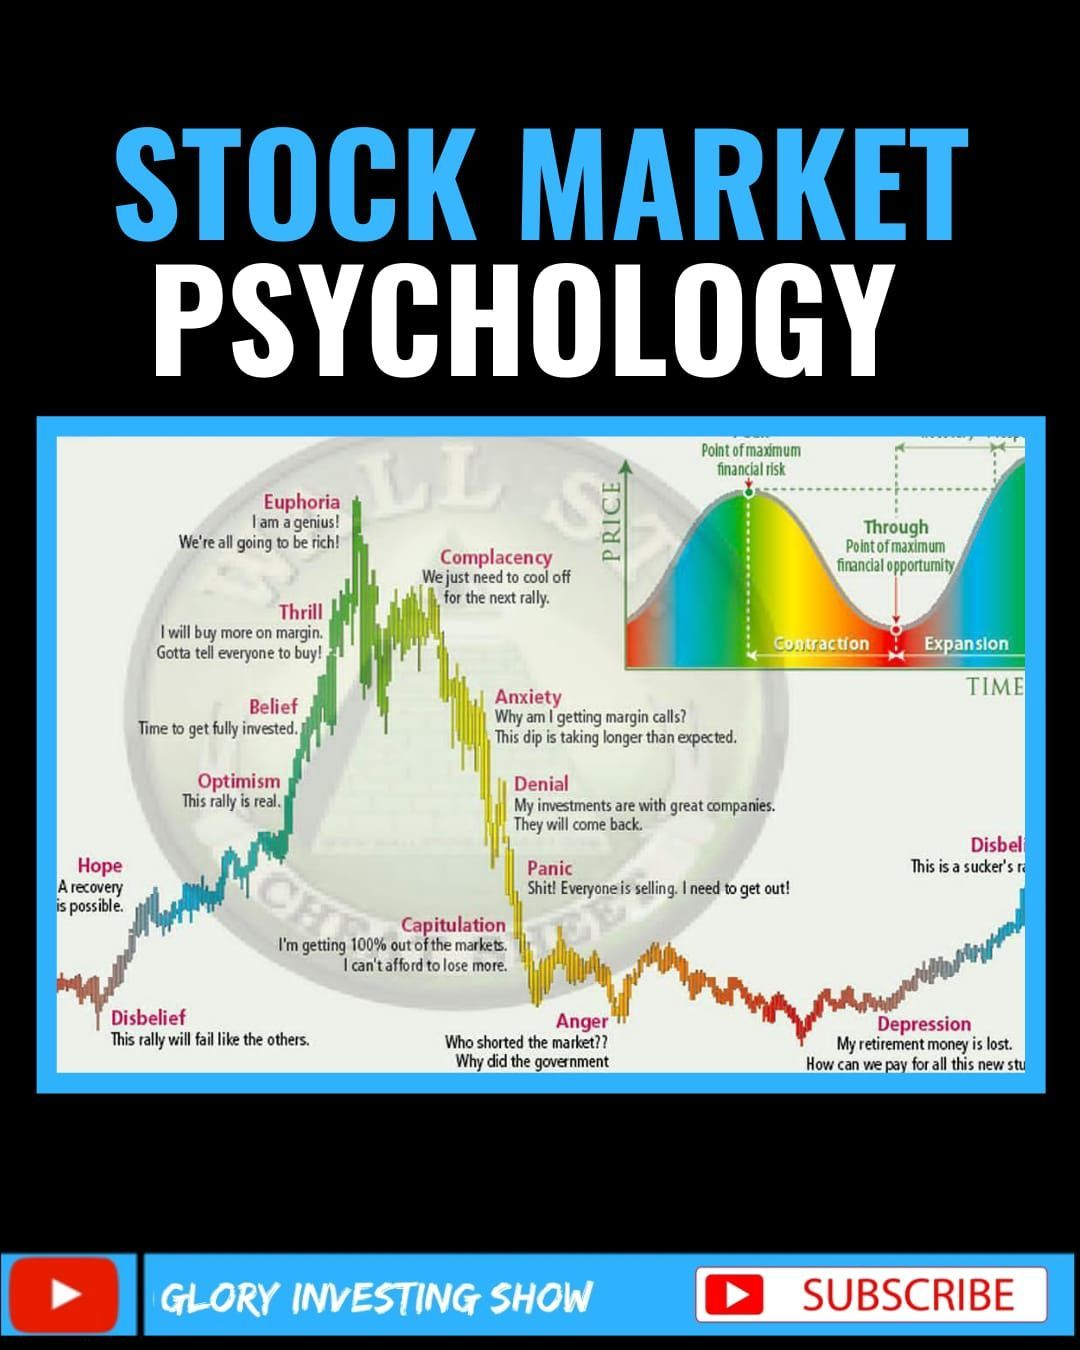 Stock Market Psychology Investing For Beginners Stock Market Tool Ideas Of Stock Market Tool Stockmarket Stockm In 2020 Finance Investing Stock Market Investing